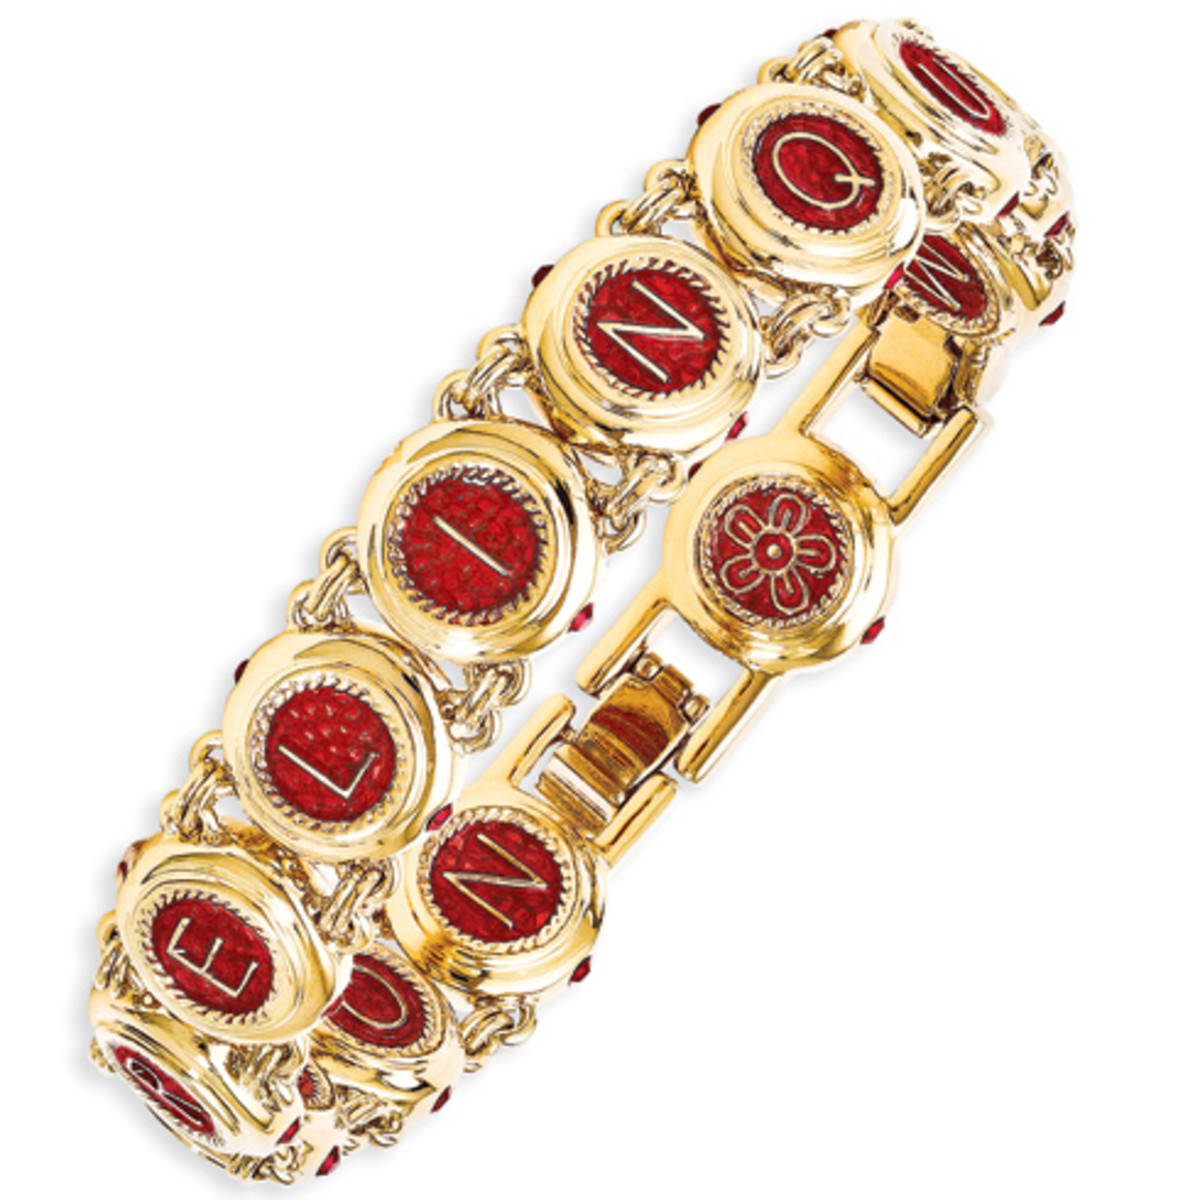 Castellani Jewelry - Artful Innovations and the Most Famous Bracelet in the World